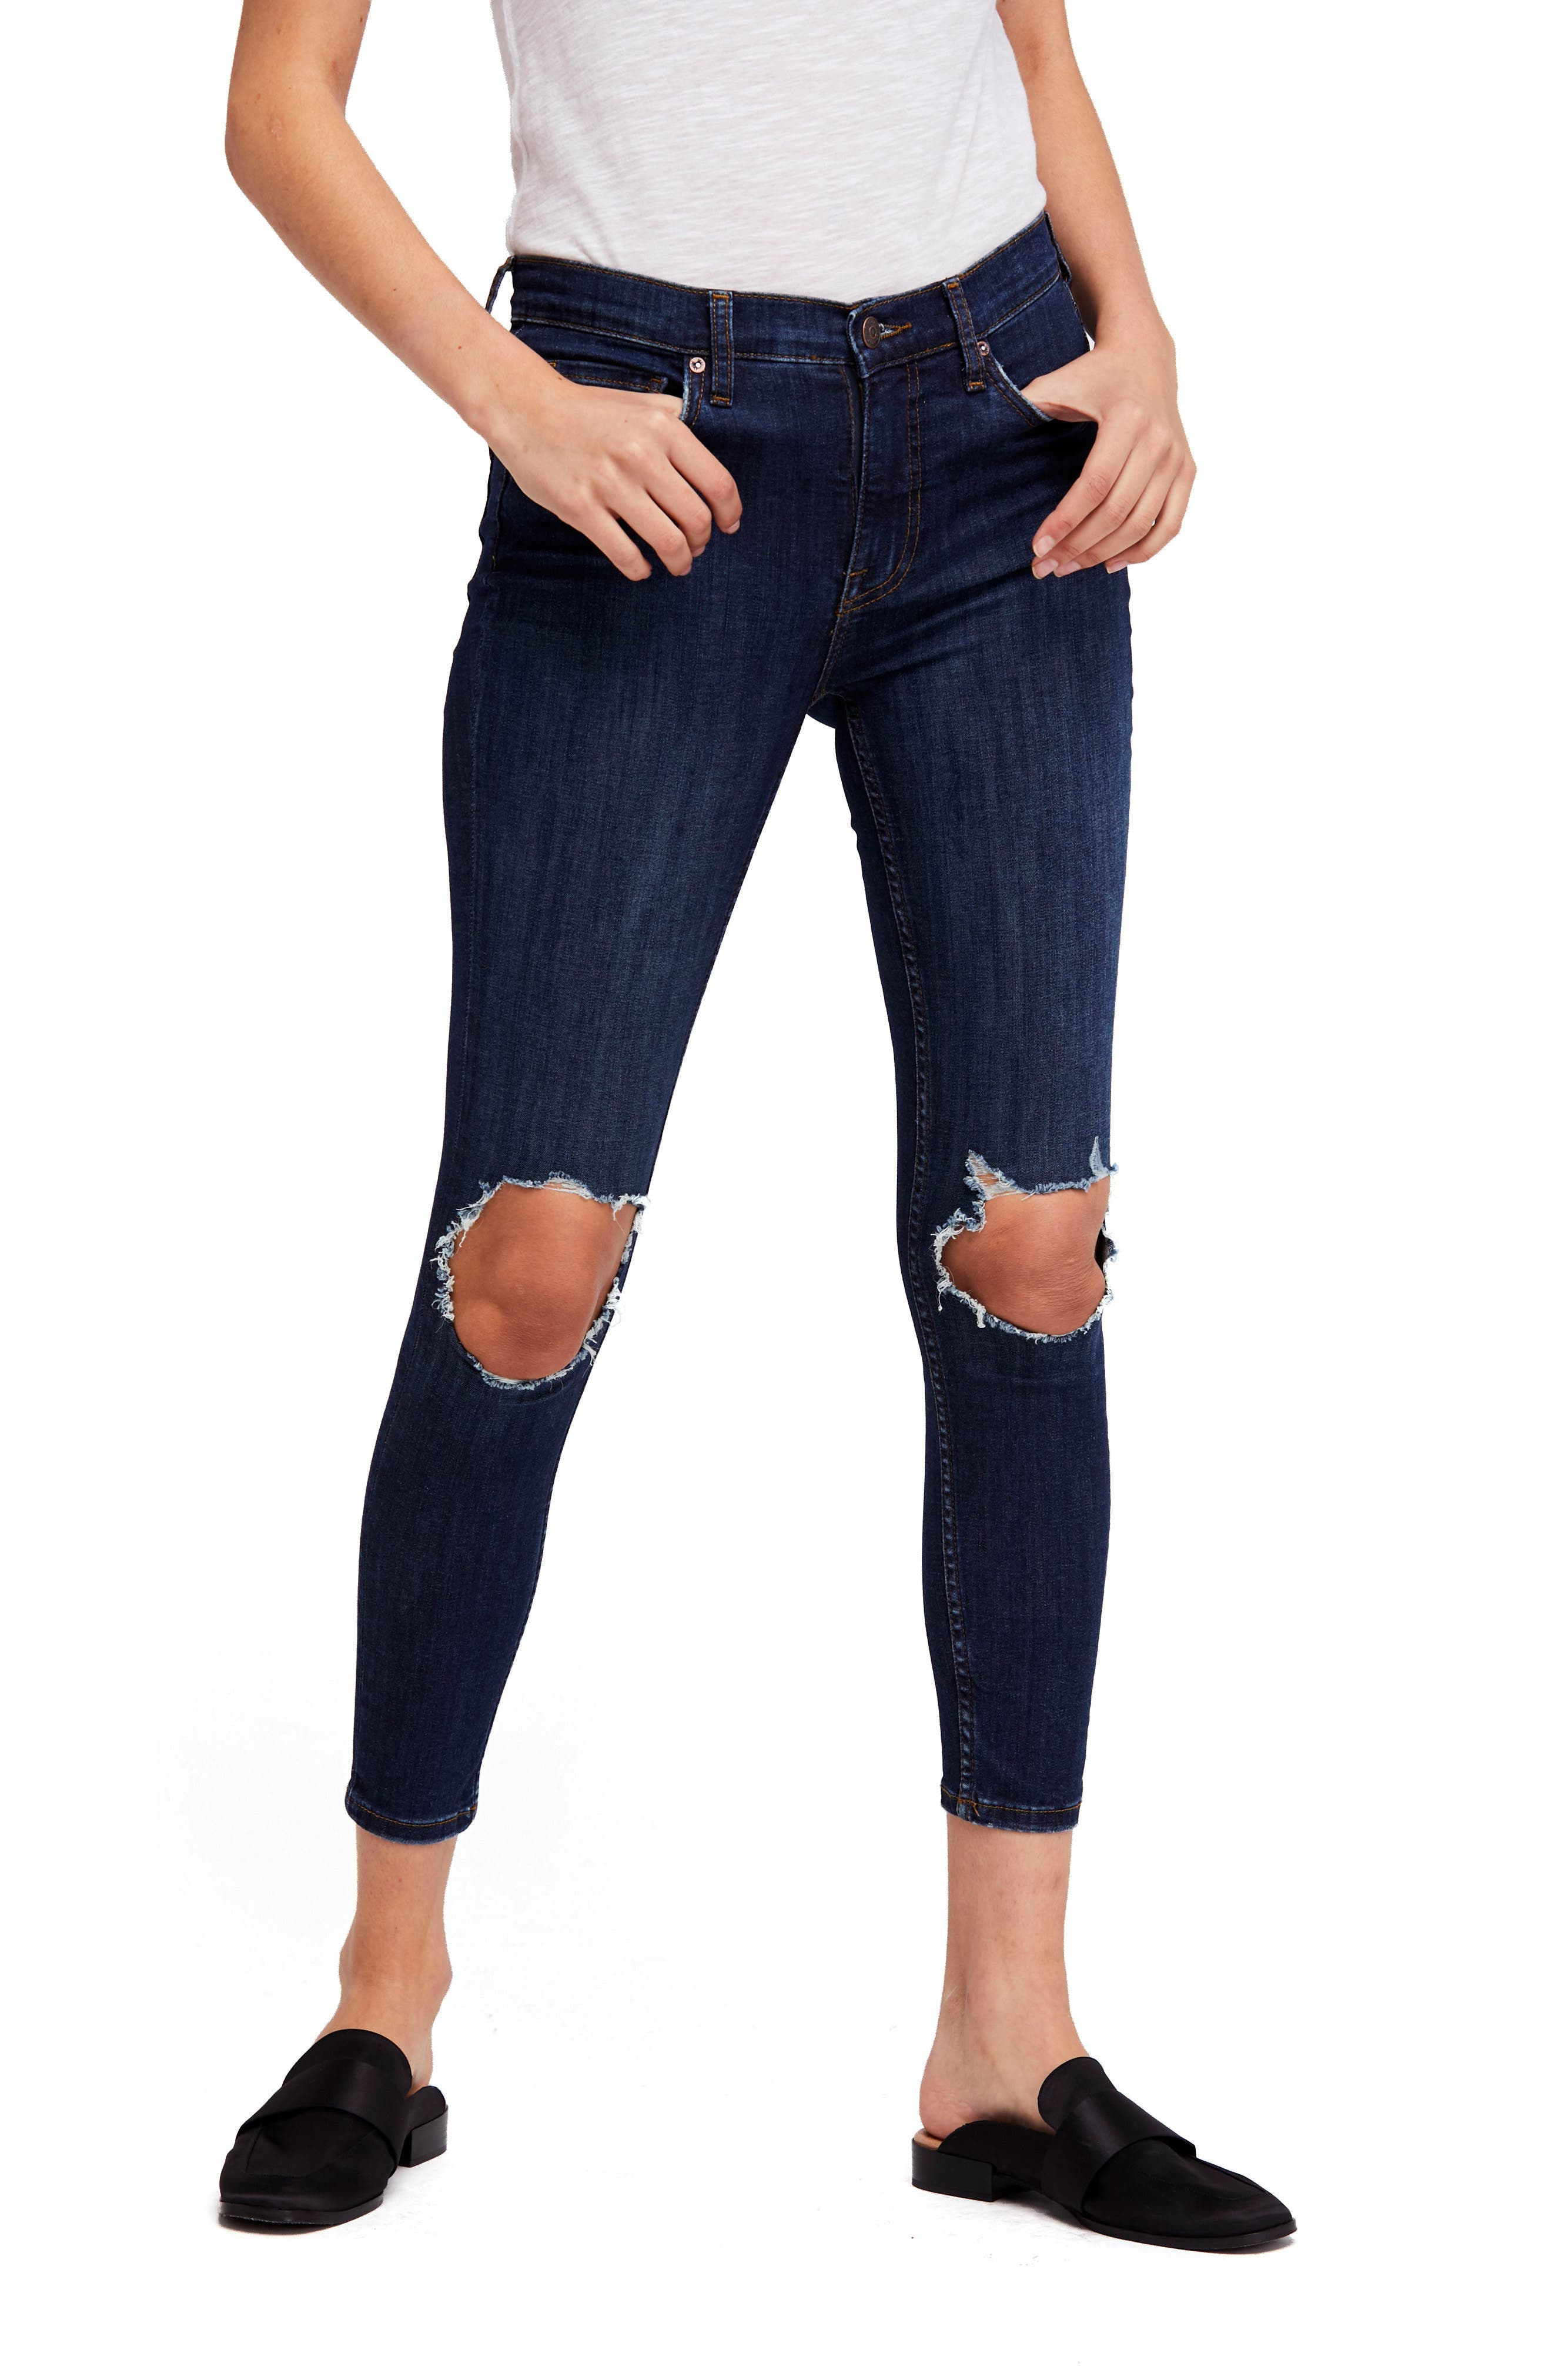 Main Image - Free People High Waist Ankle Skinny Jeans